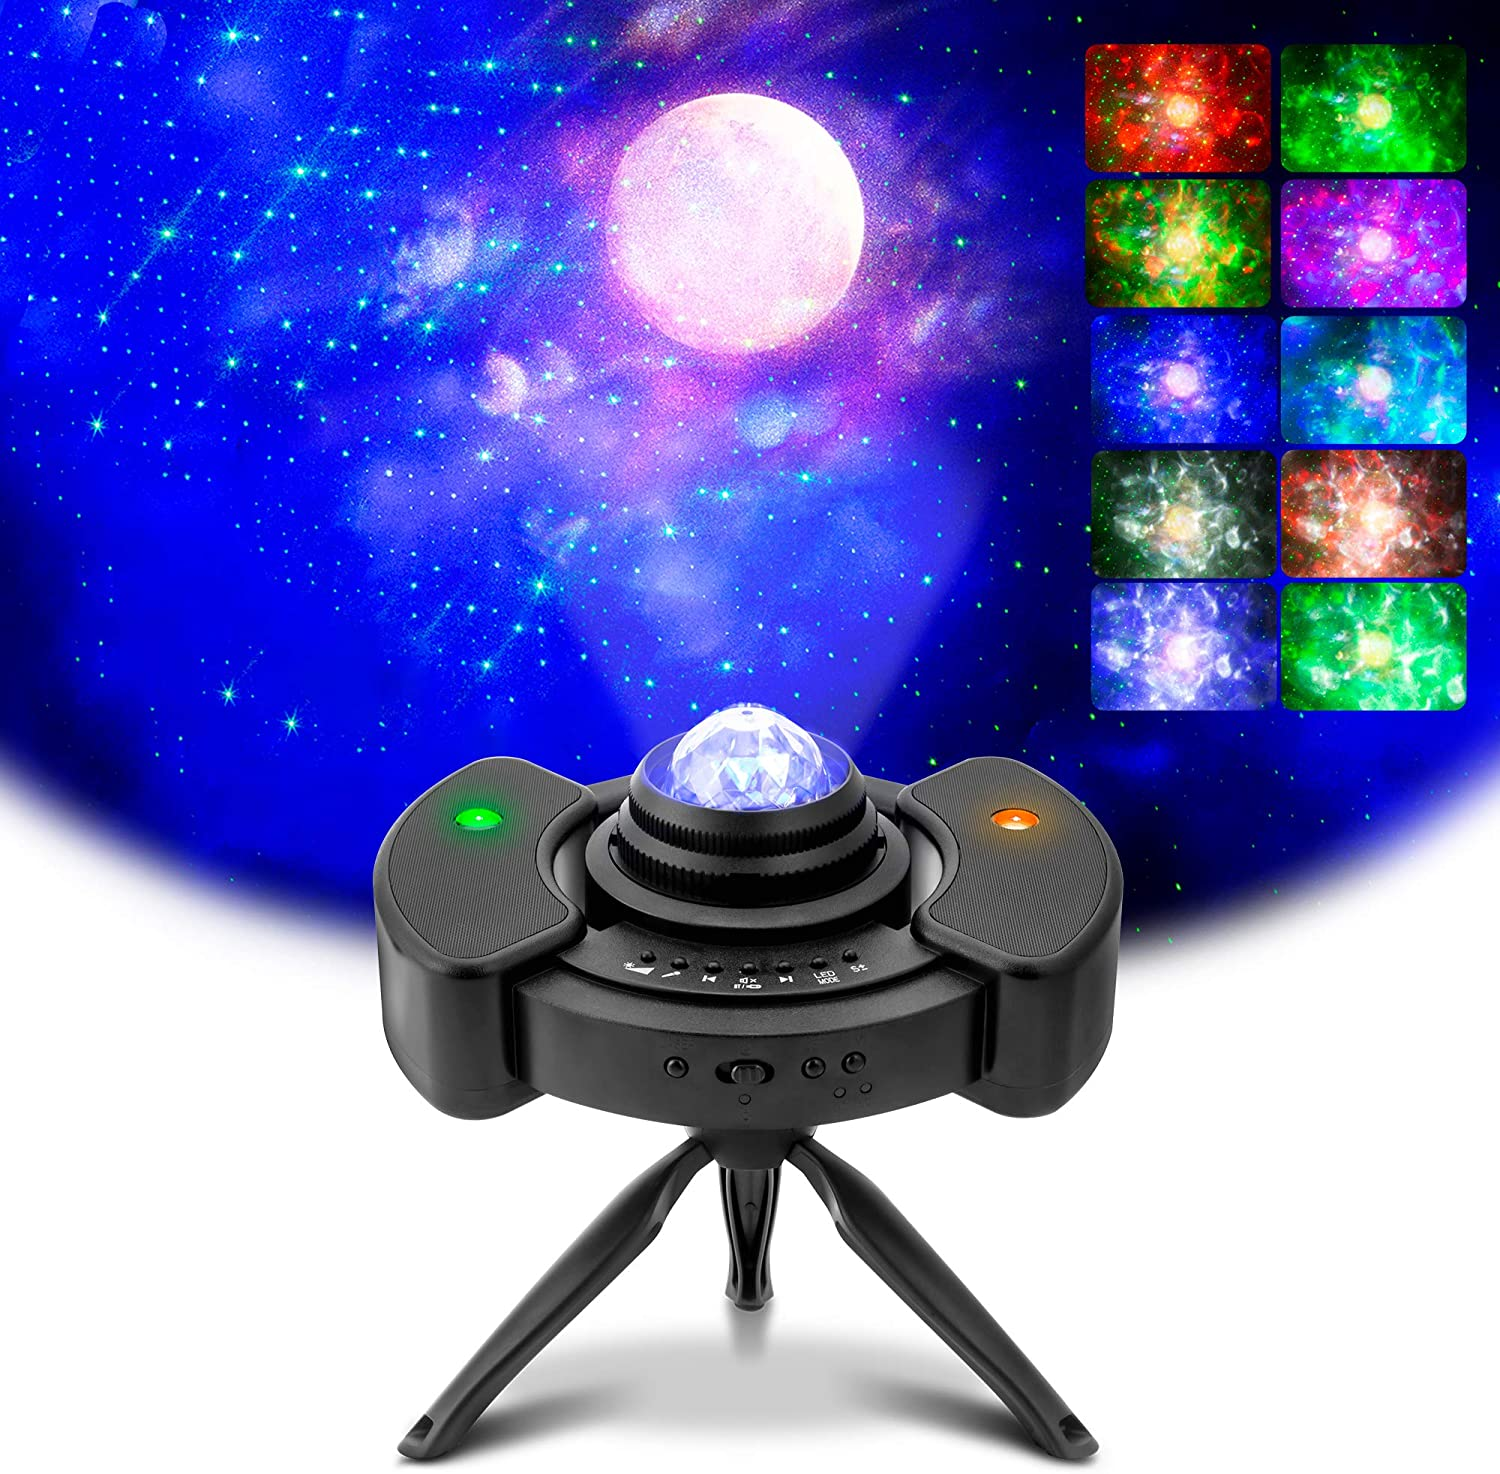 Galaxy Light Projector for Bedroom,TekHome Laser Star Projector with Bluetooth Speaker,LED Nebula Projector for Party Room Home Theater Lighting,Christmas Birthday Gifts for Kids Baby Women Men.